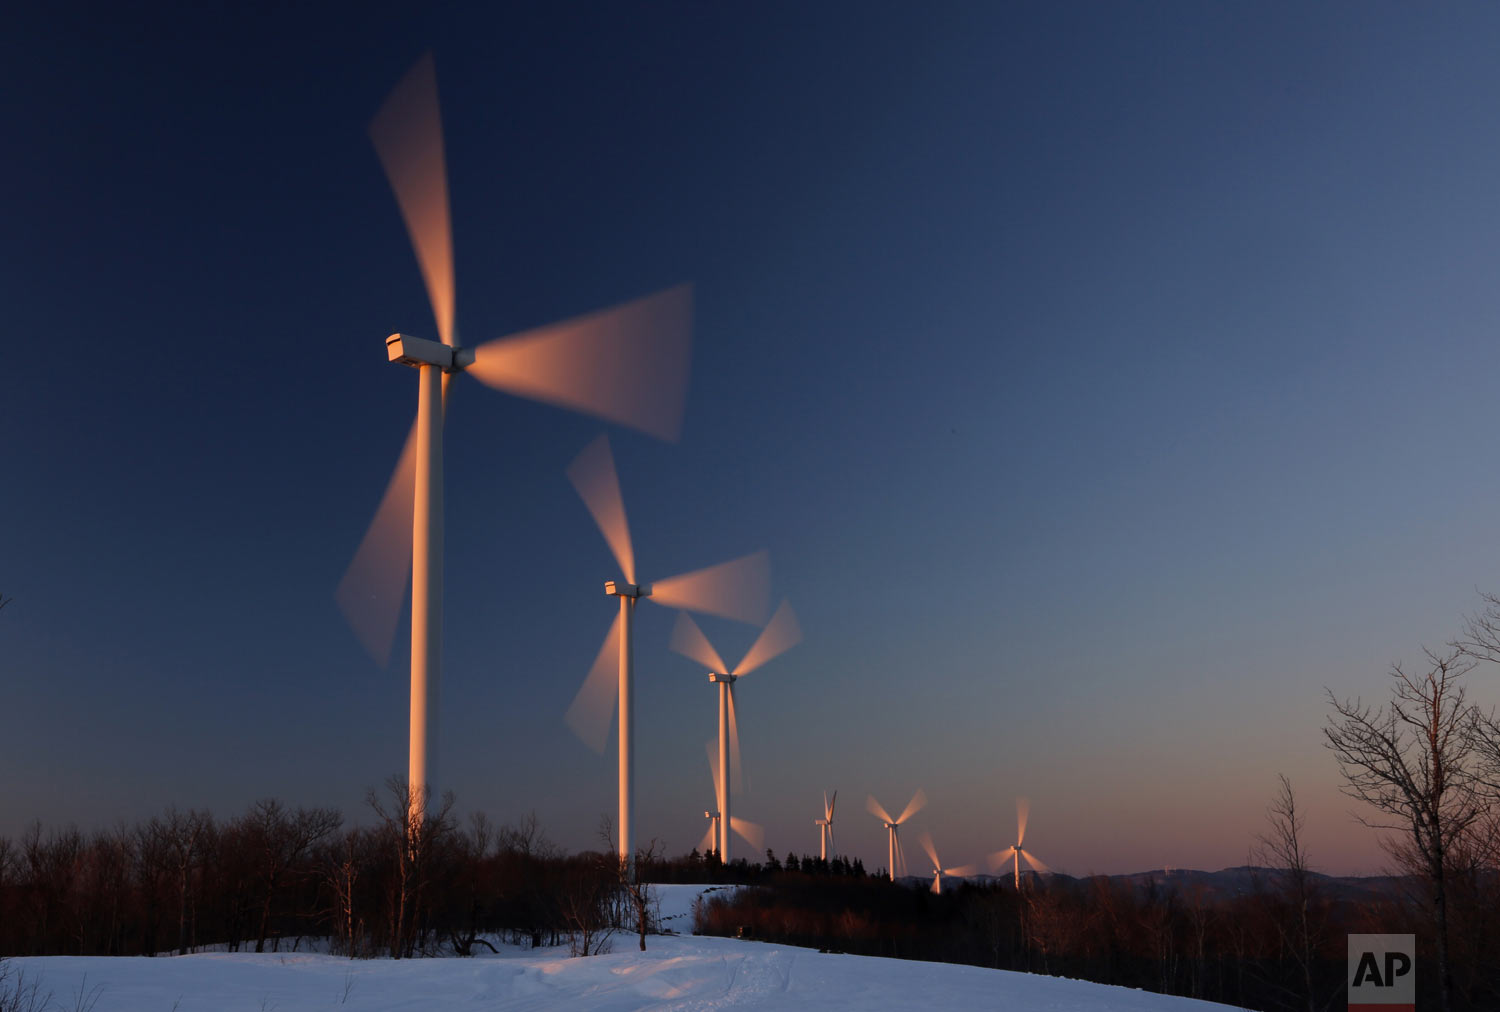 Wind turbines are bathed in the first rays of sunlight at the Saddleback Ridge Wind Project, Wednesday, March 20, 2019, in Carthage, Maine. The first day of spring blew in with gentle winds and cold temperatures. Warmer and wetter weather is expected later in the week. (AP Photo/Robert F. Bukaty)